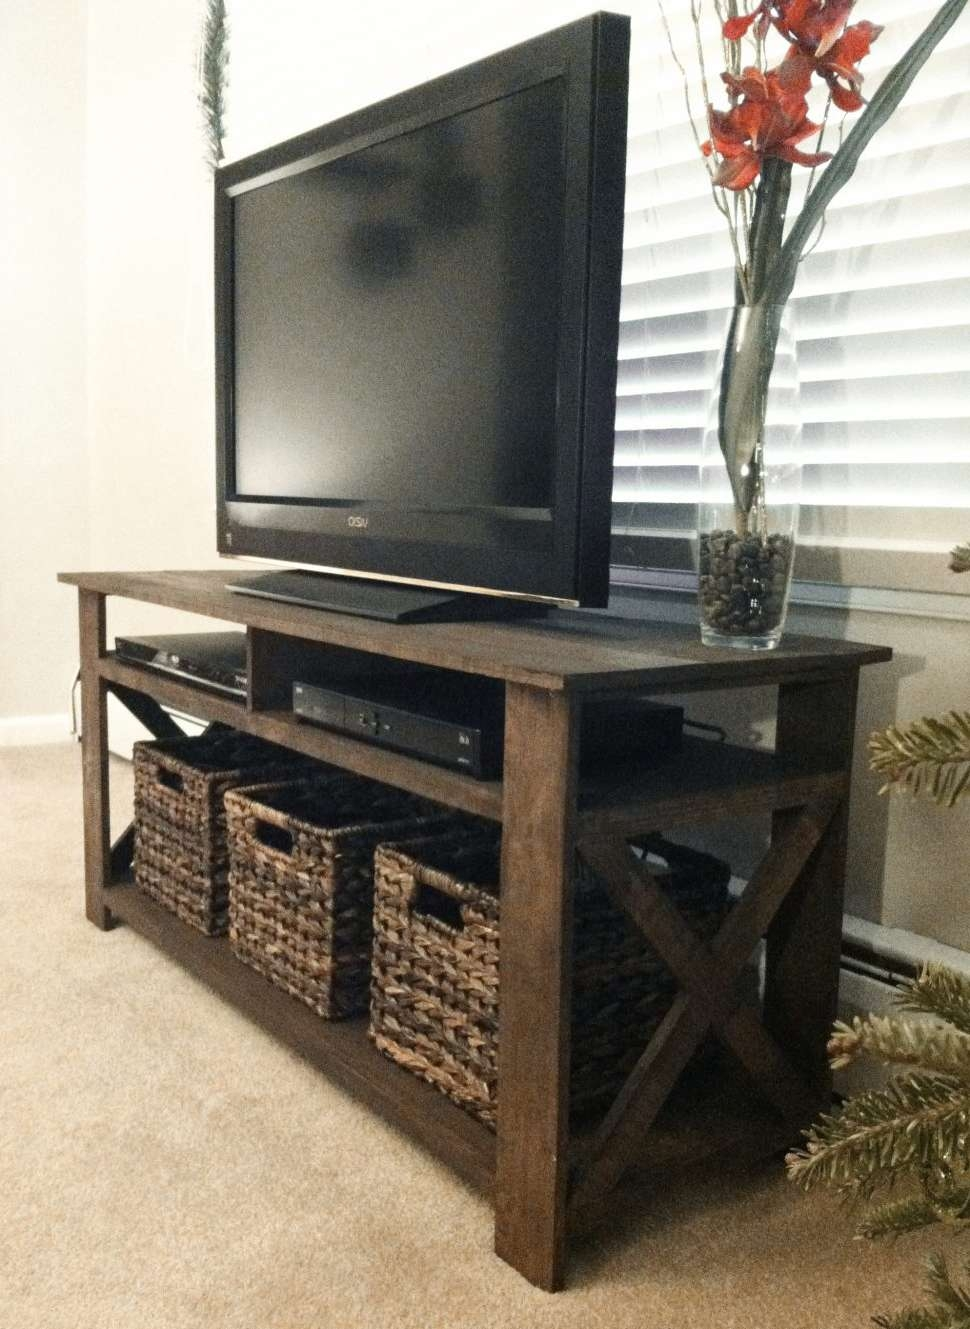 Tv Stand With Baskets Within Tv Stands With Baskets (View 3 of 15)